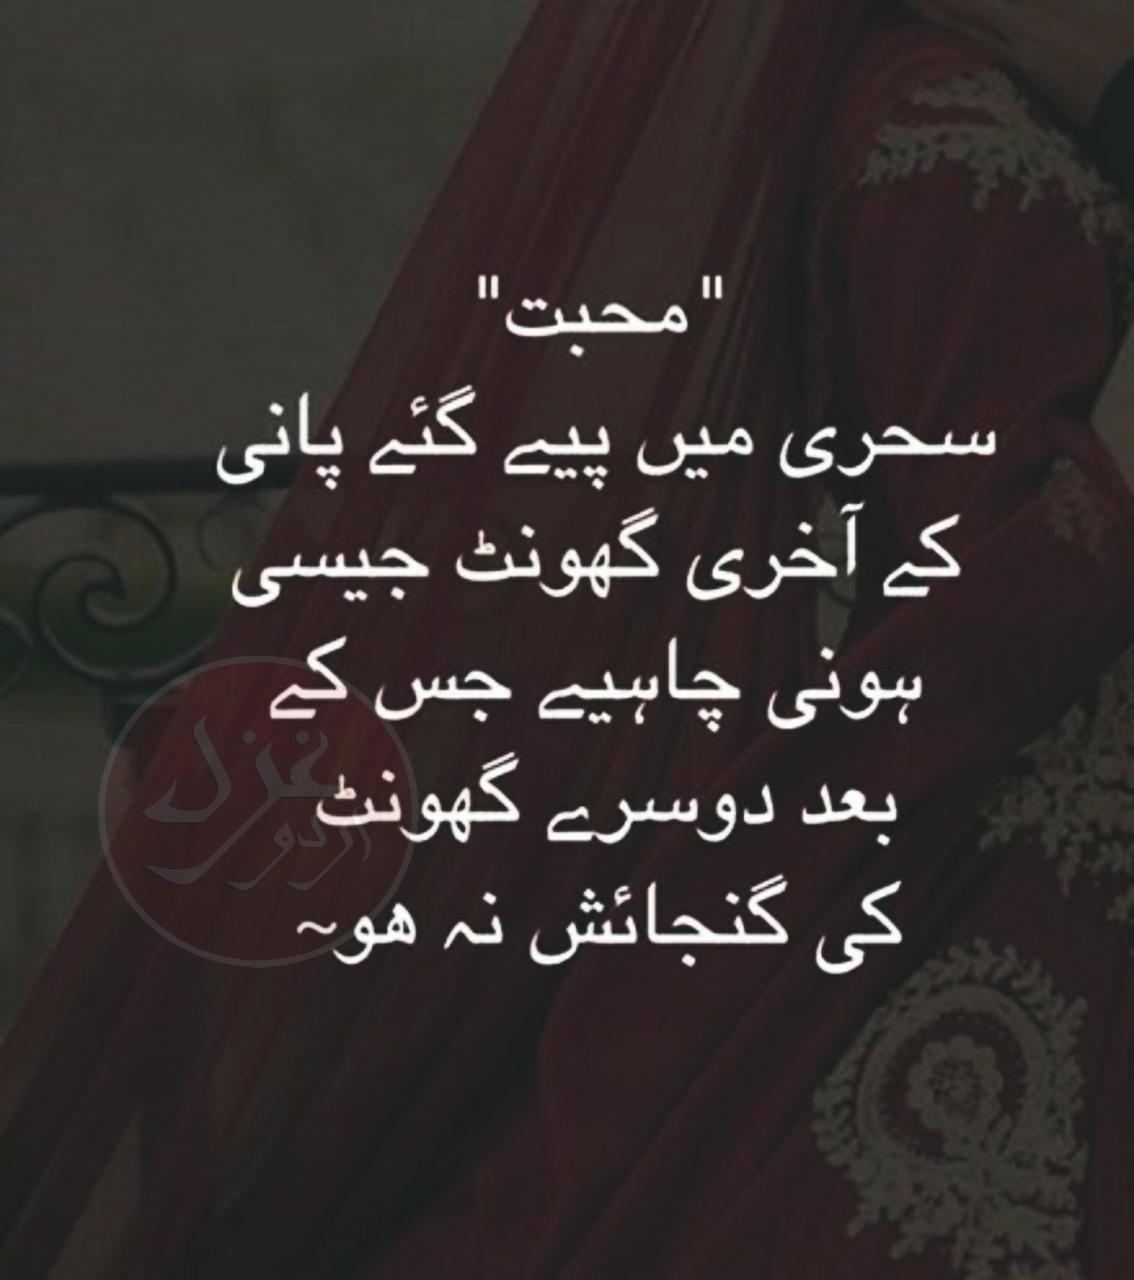 Love Quotes Short In Urdu Bht Khoob Toxn Pinterest Urdu